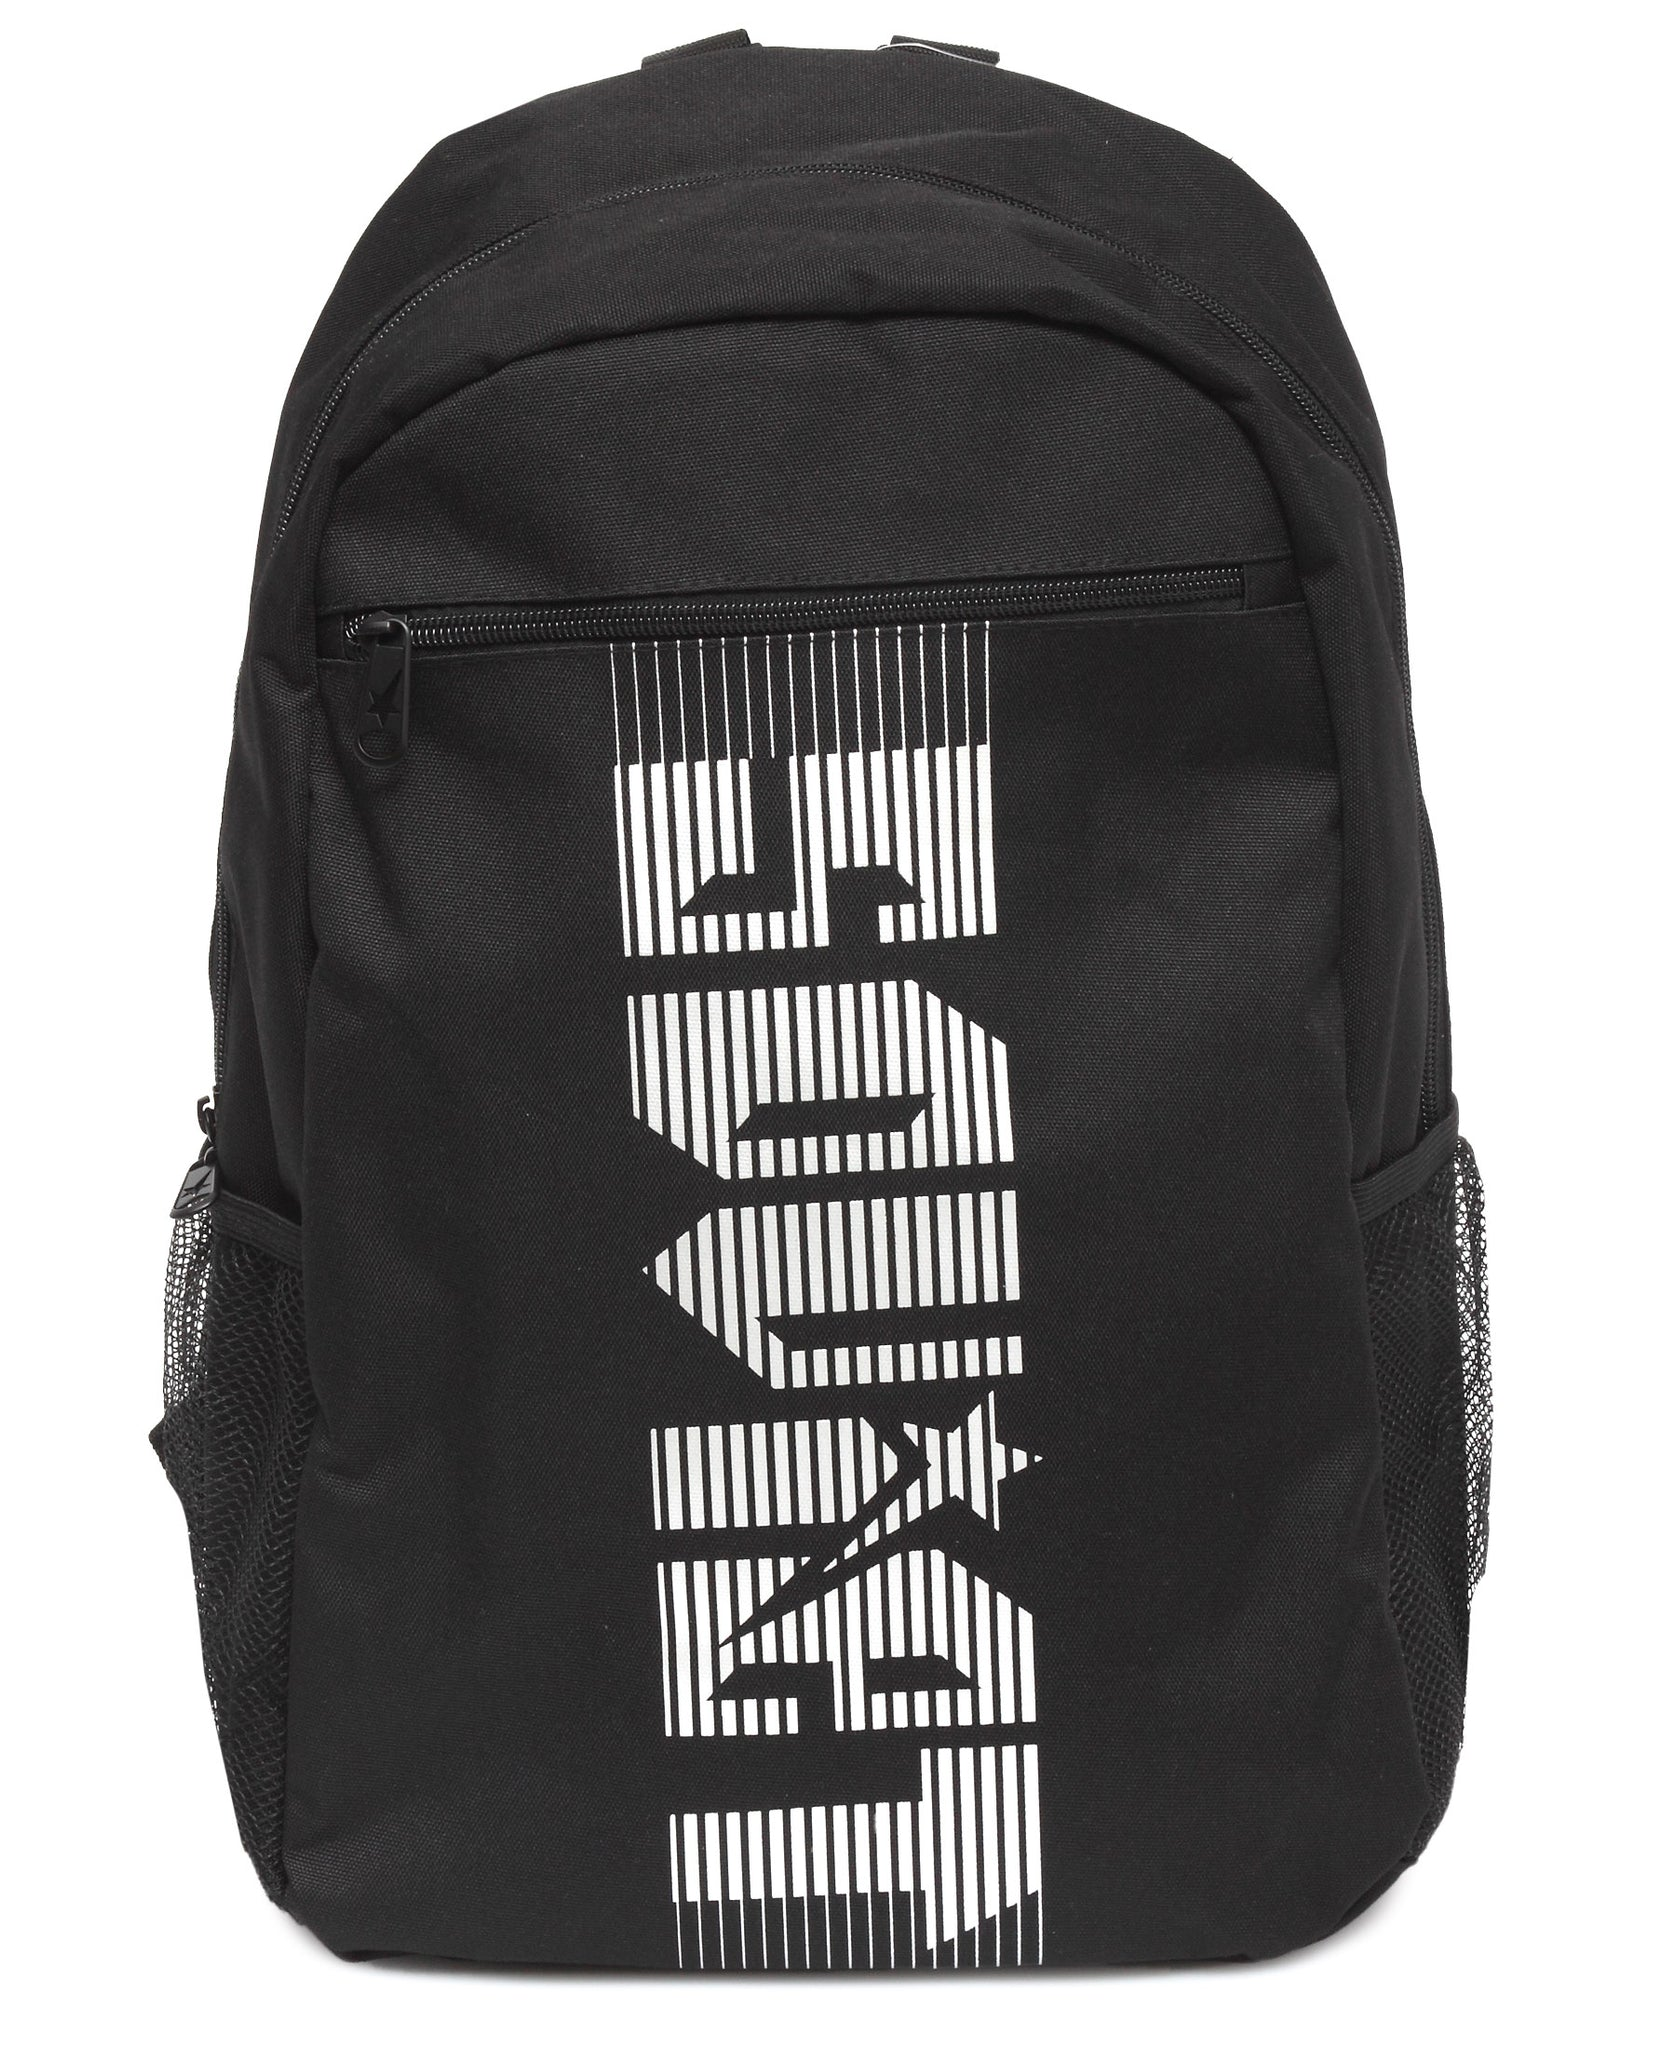 Beavers Backpack - Black-White